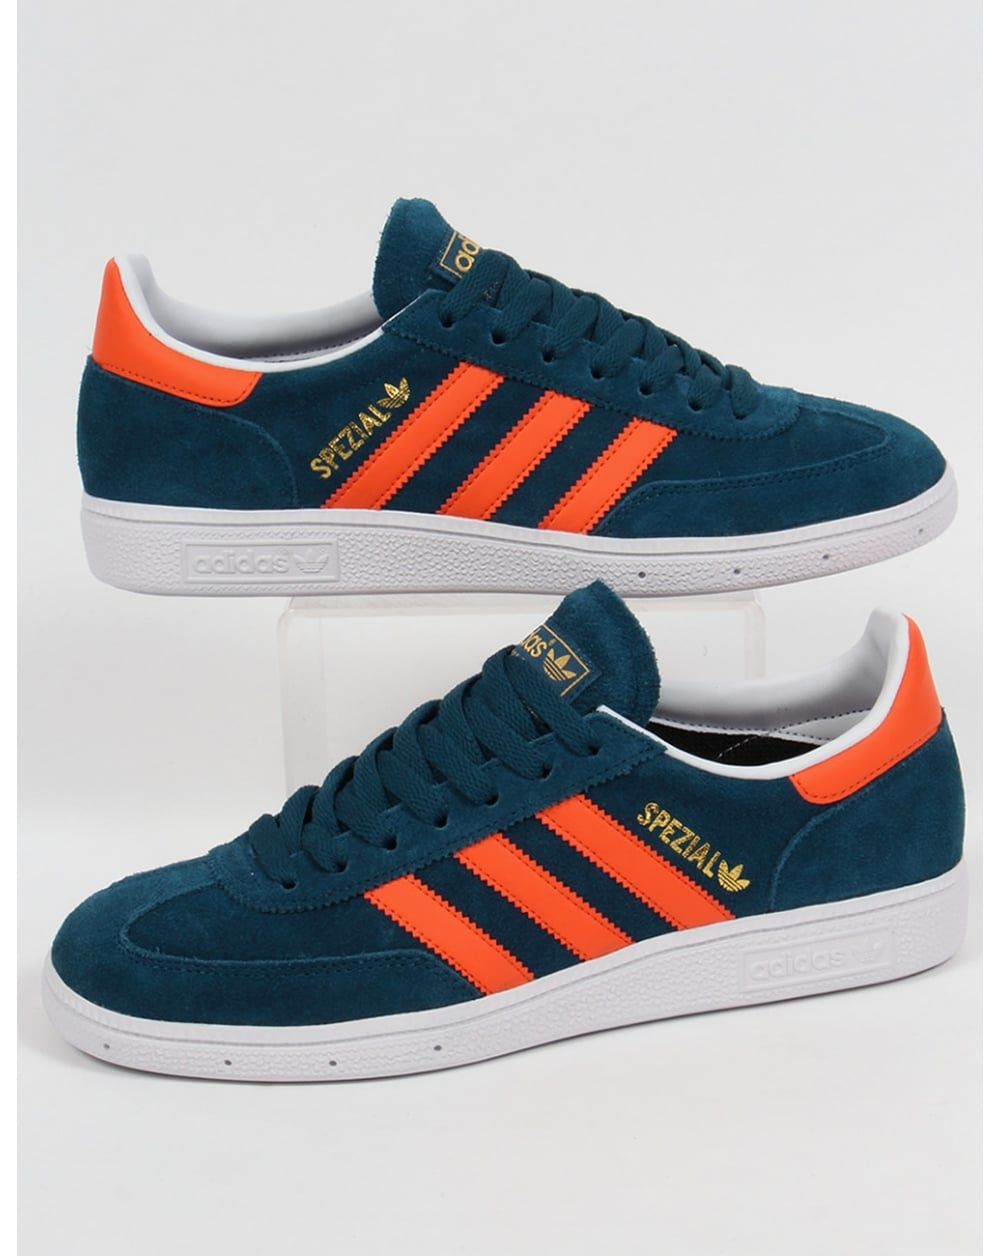 Peculiar Bañera neumonía  Adidas Spezial Trainers Mineral Blue/orange/white, Suede, Shoes